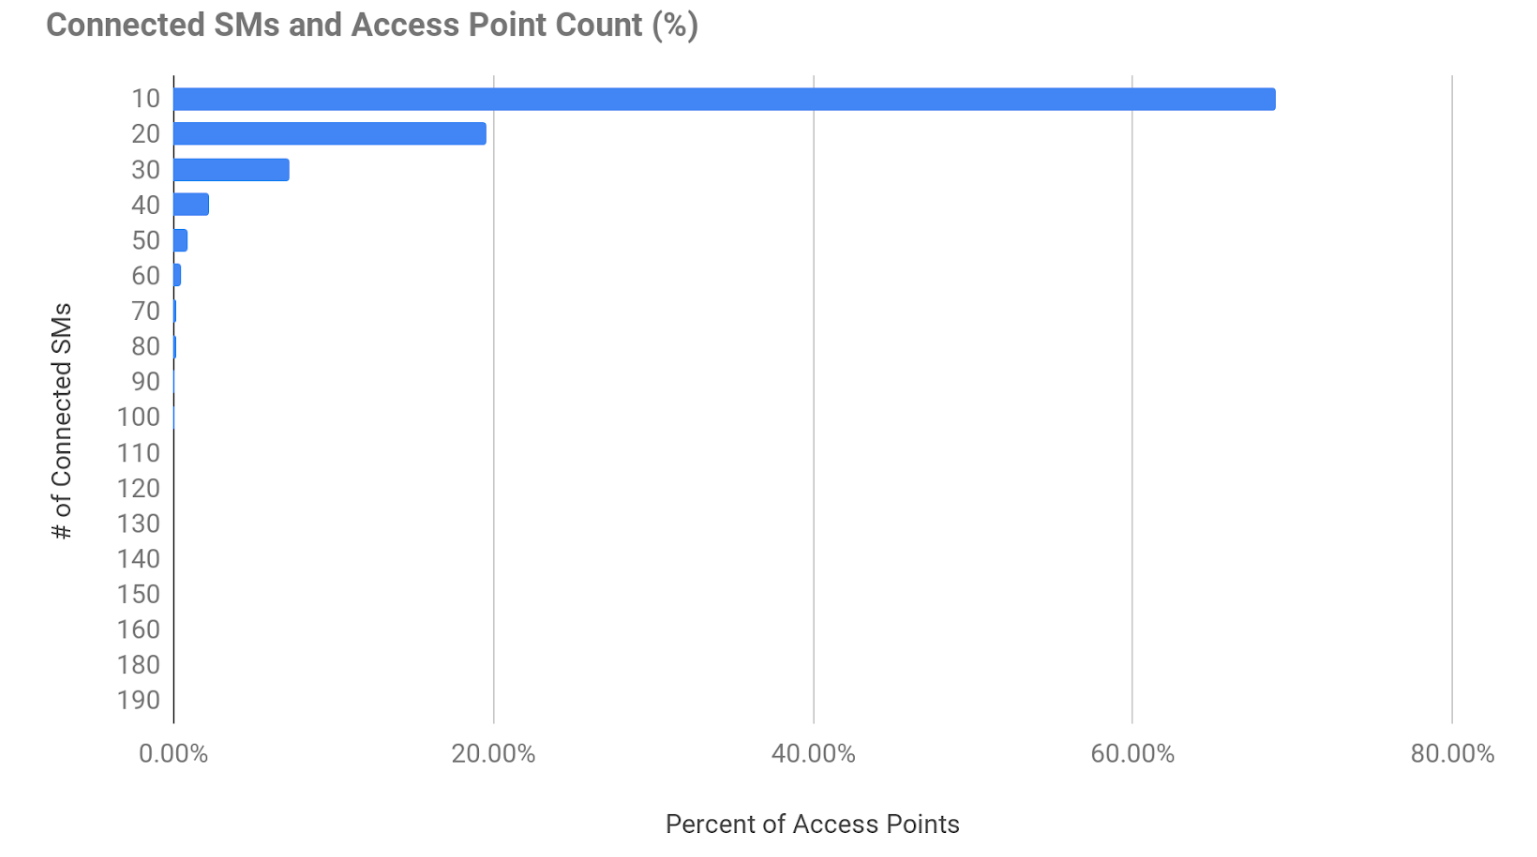 A bar chart showing connected SMs and Access Point Count (%)